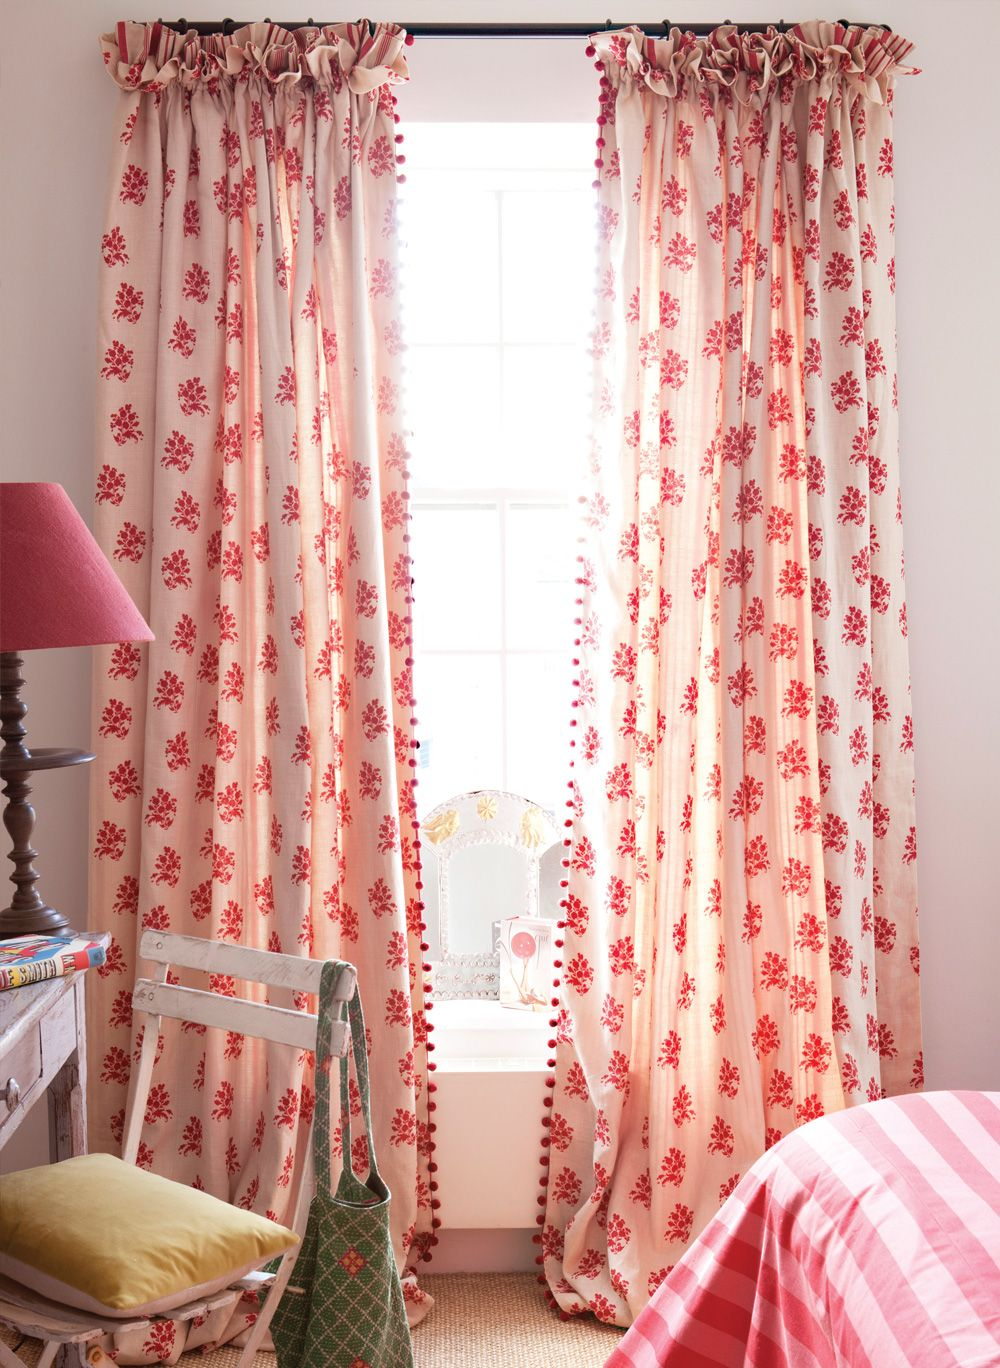 Boho window curtains - Boho Looks